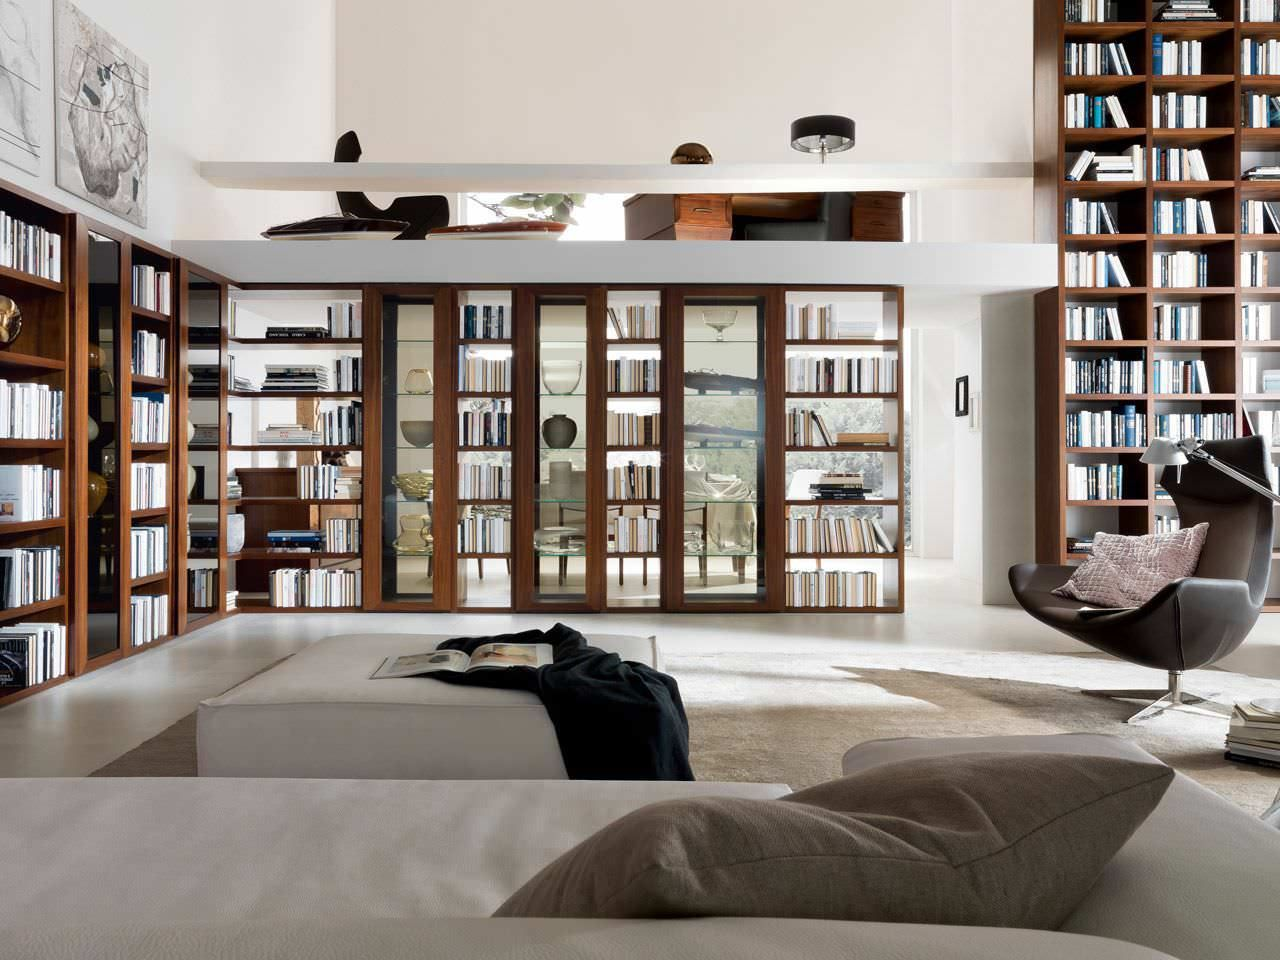 Exceptional Furniture, Cool Bookcases, Perfect For Smart Storage System And Interior  Decorating Ideas: Amazing Home Library Interior Design Ideas Featur.